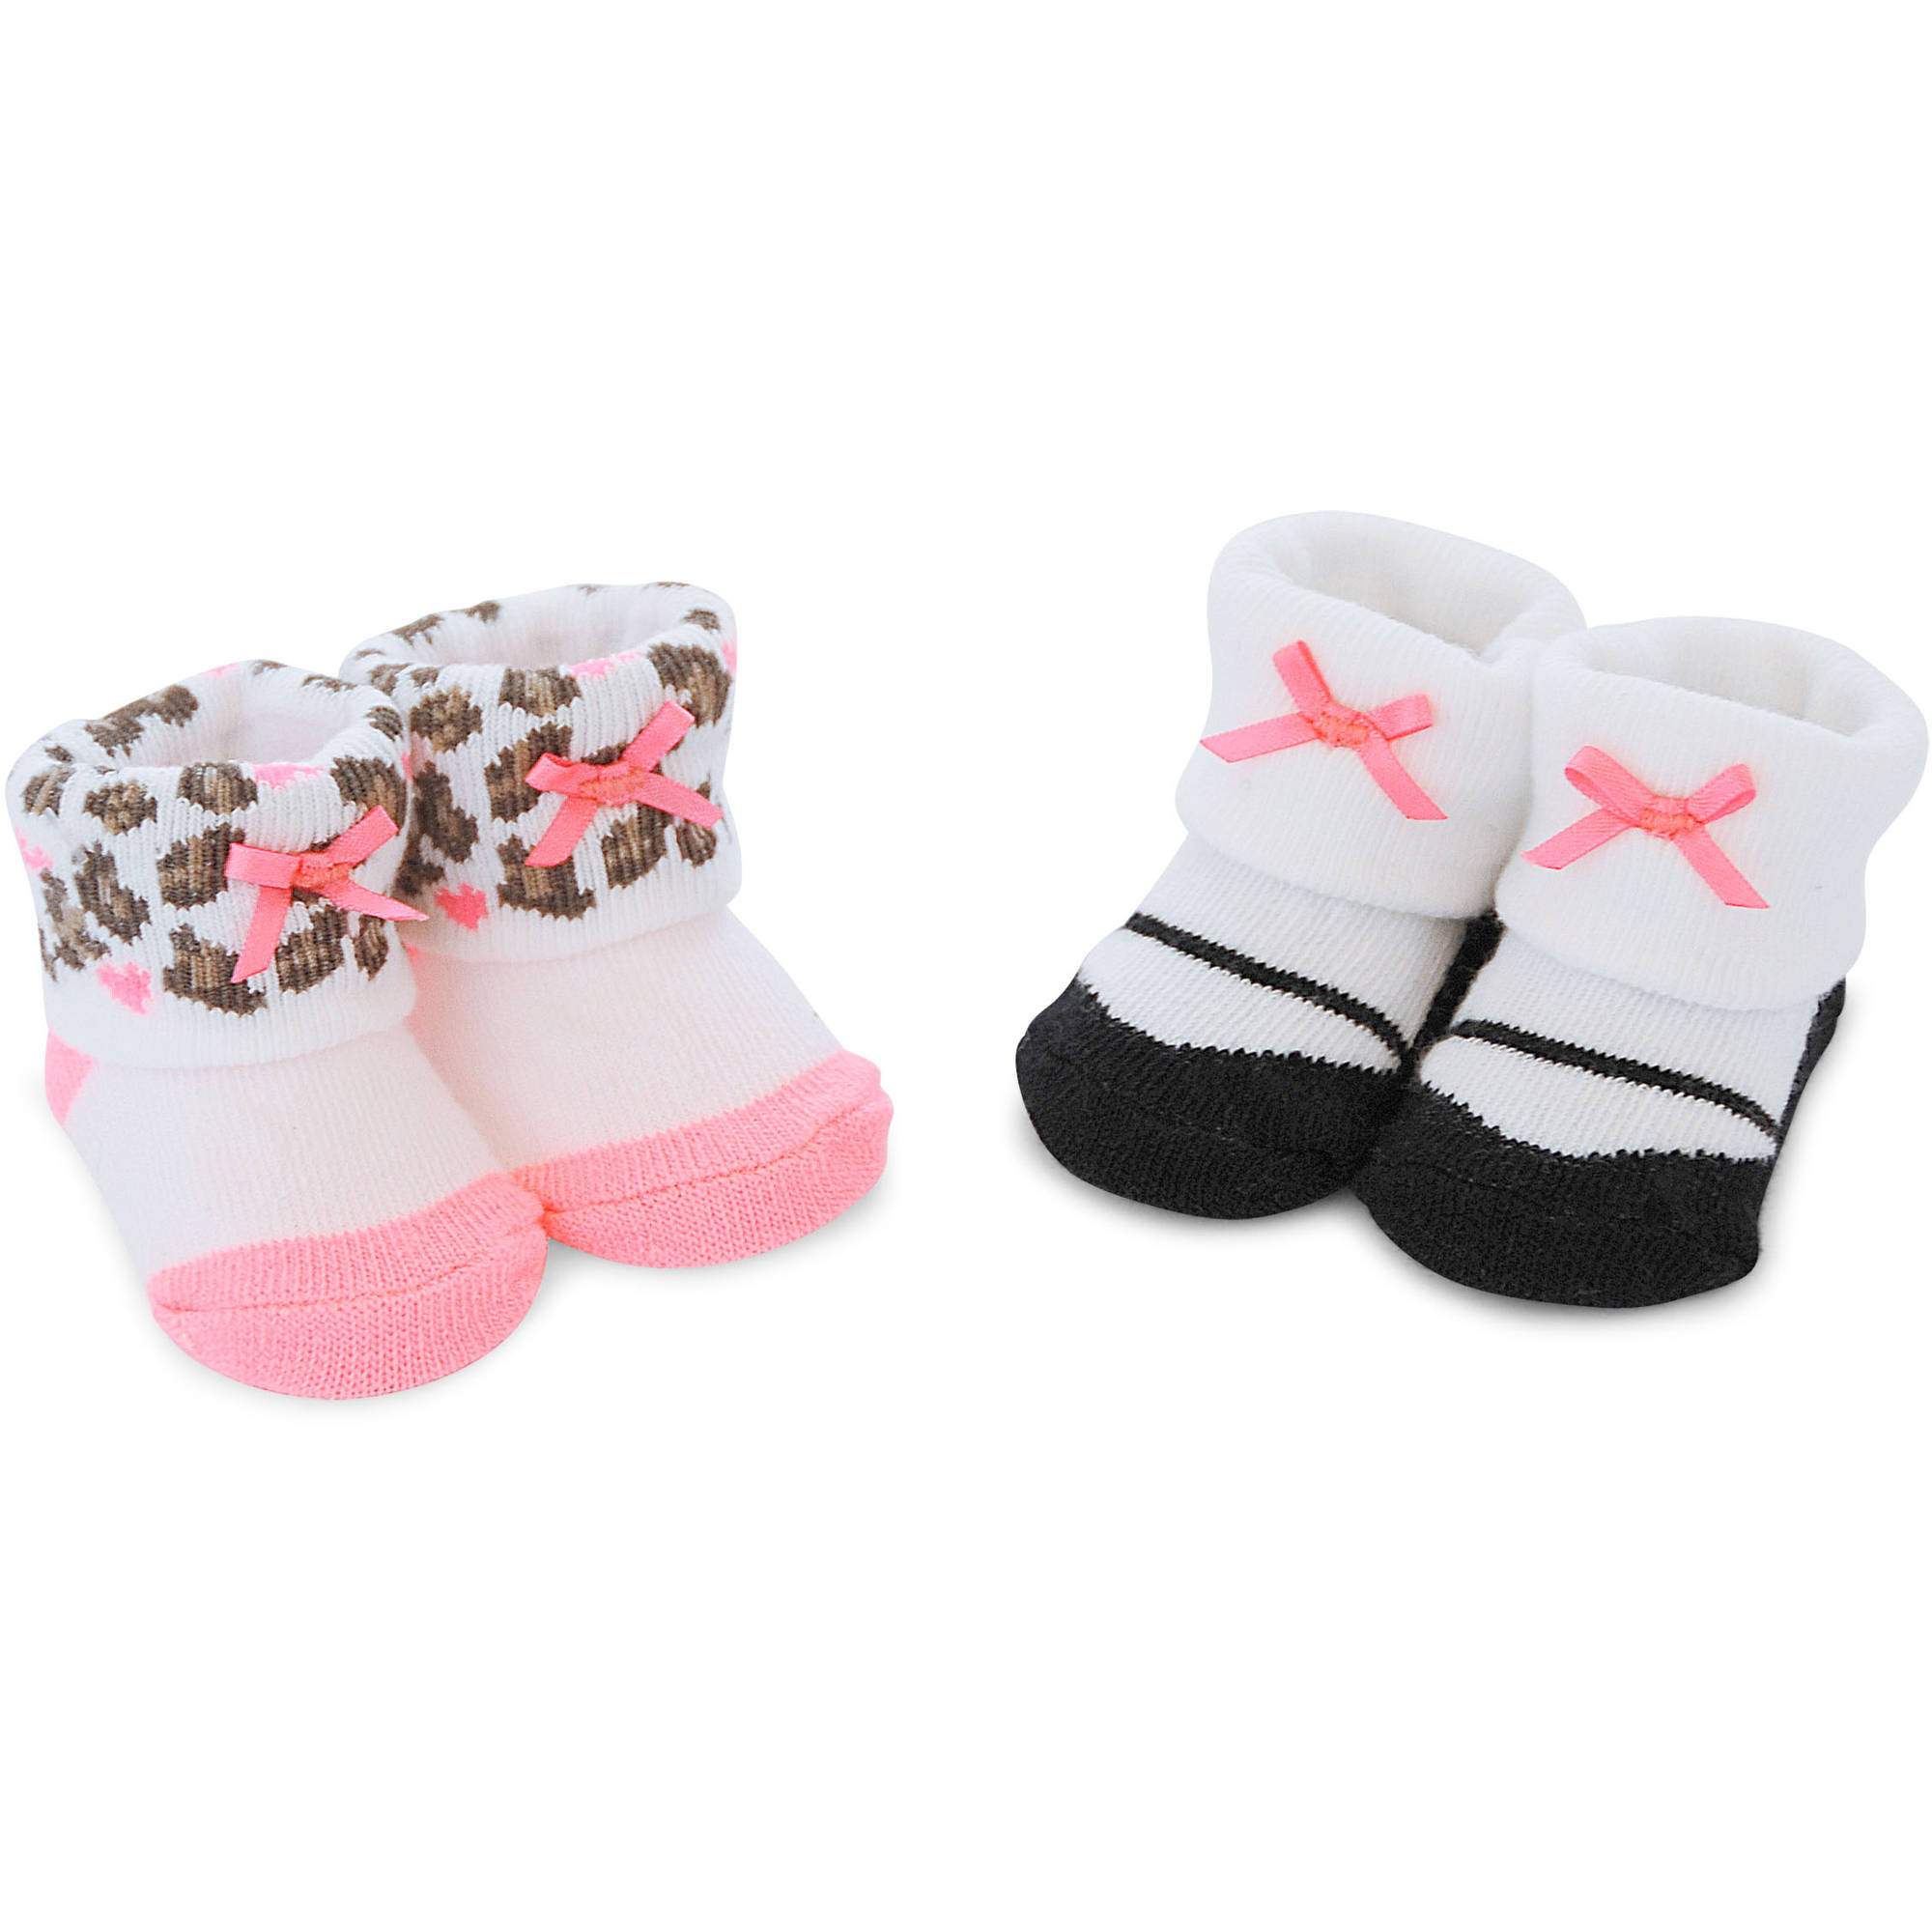 Newborn Baby Girl Leopard Keepsakes Laces, 2 Pack